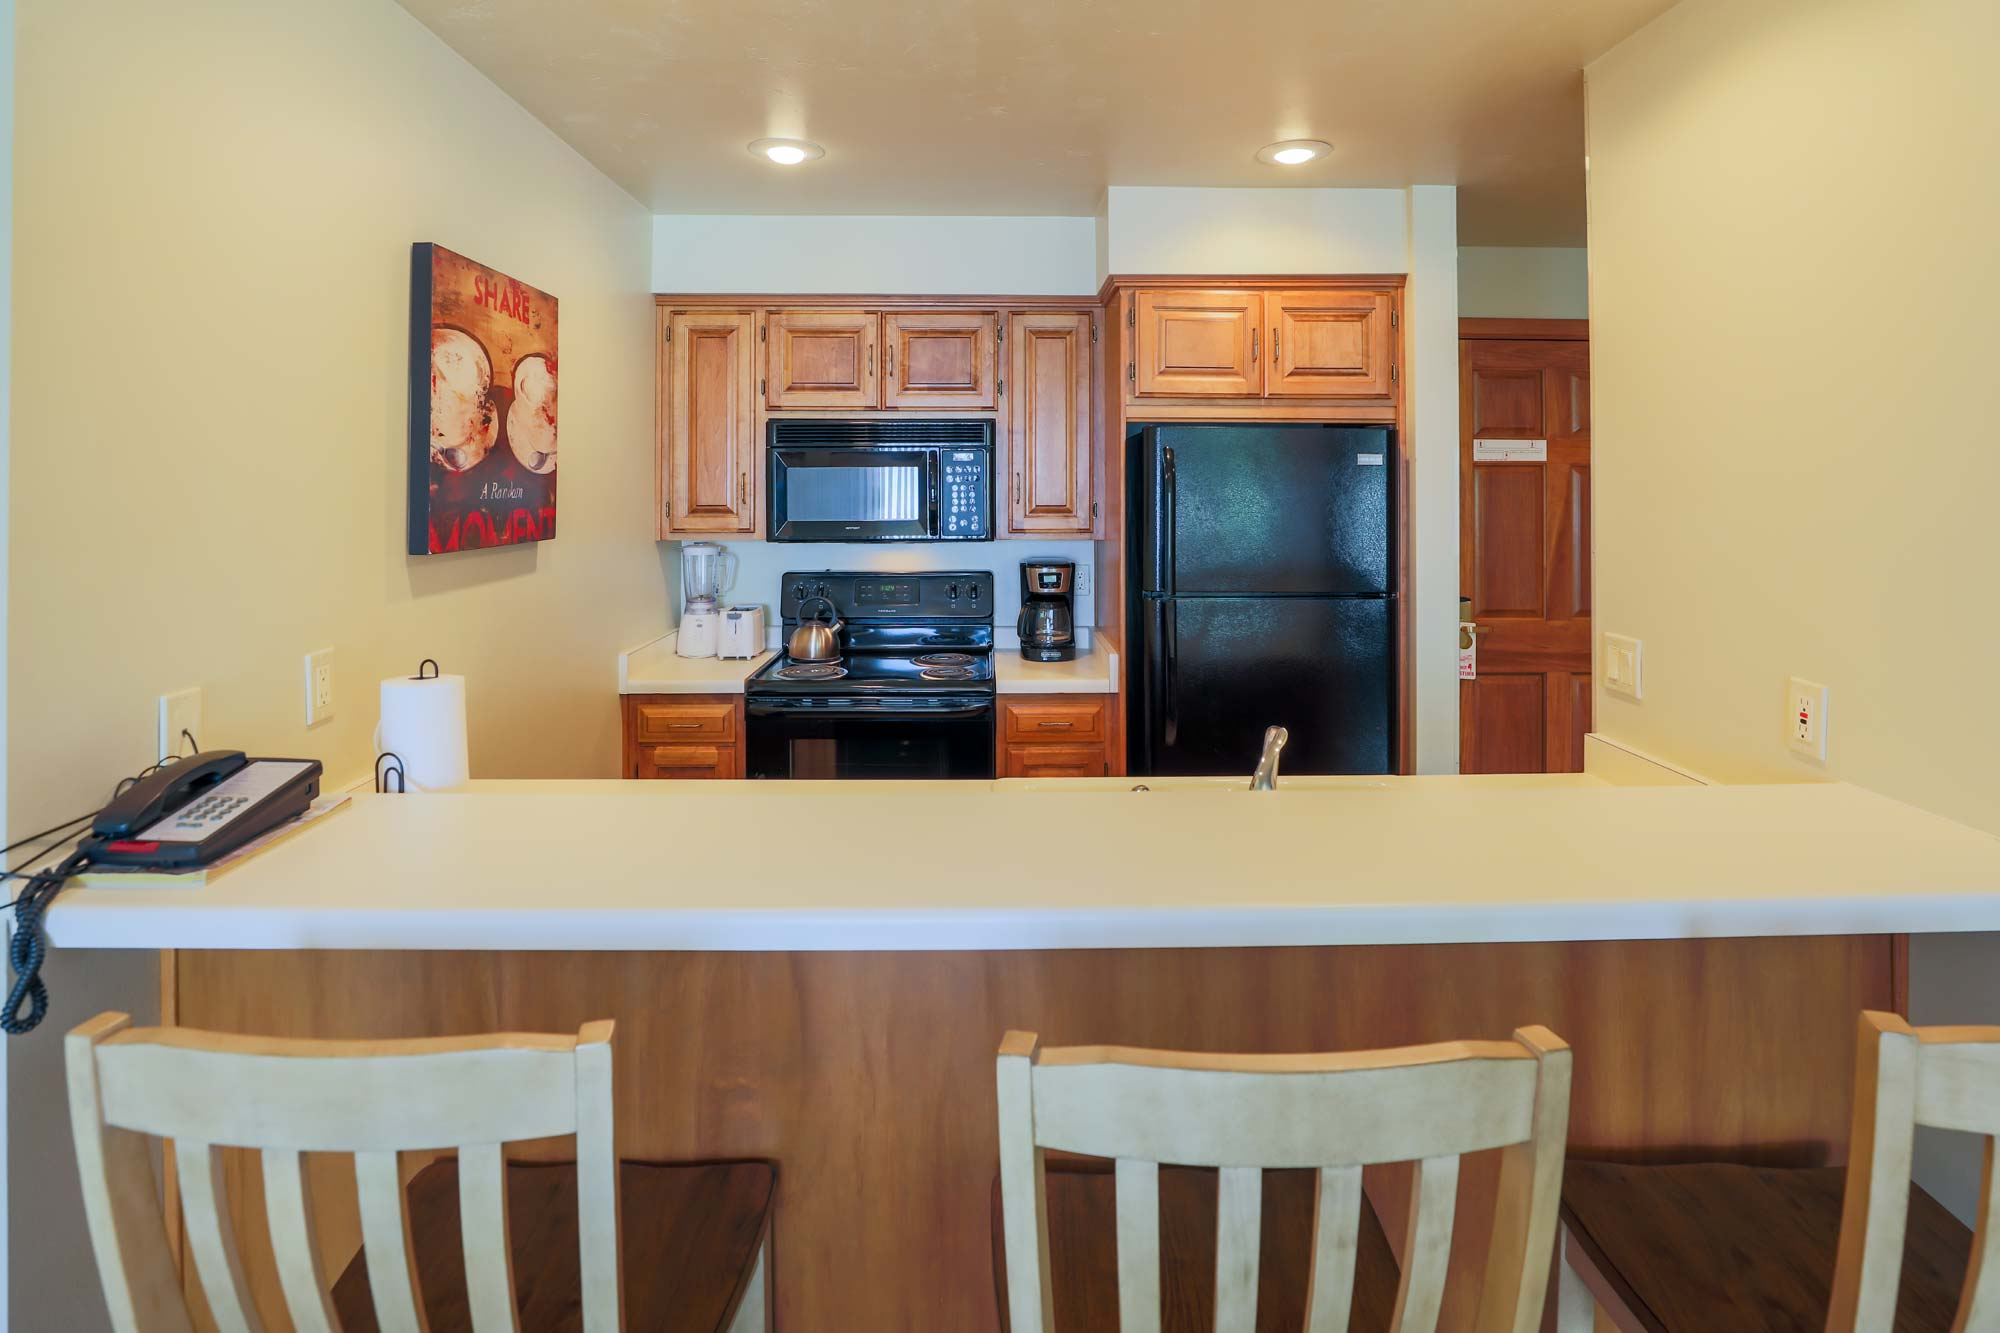 Kitchen of Two Bedroom Vacation Rental at Door County Resort and Hotels